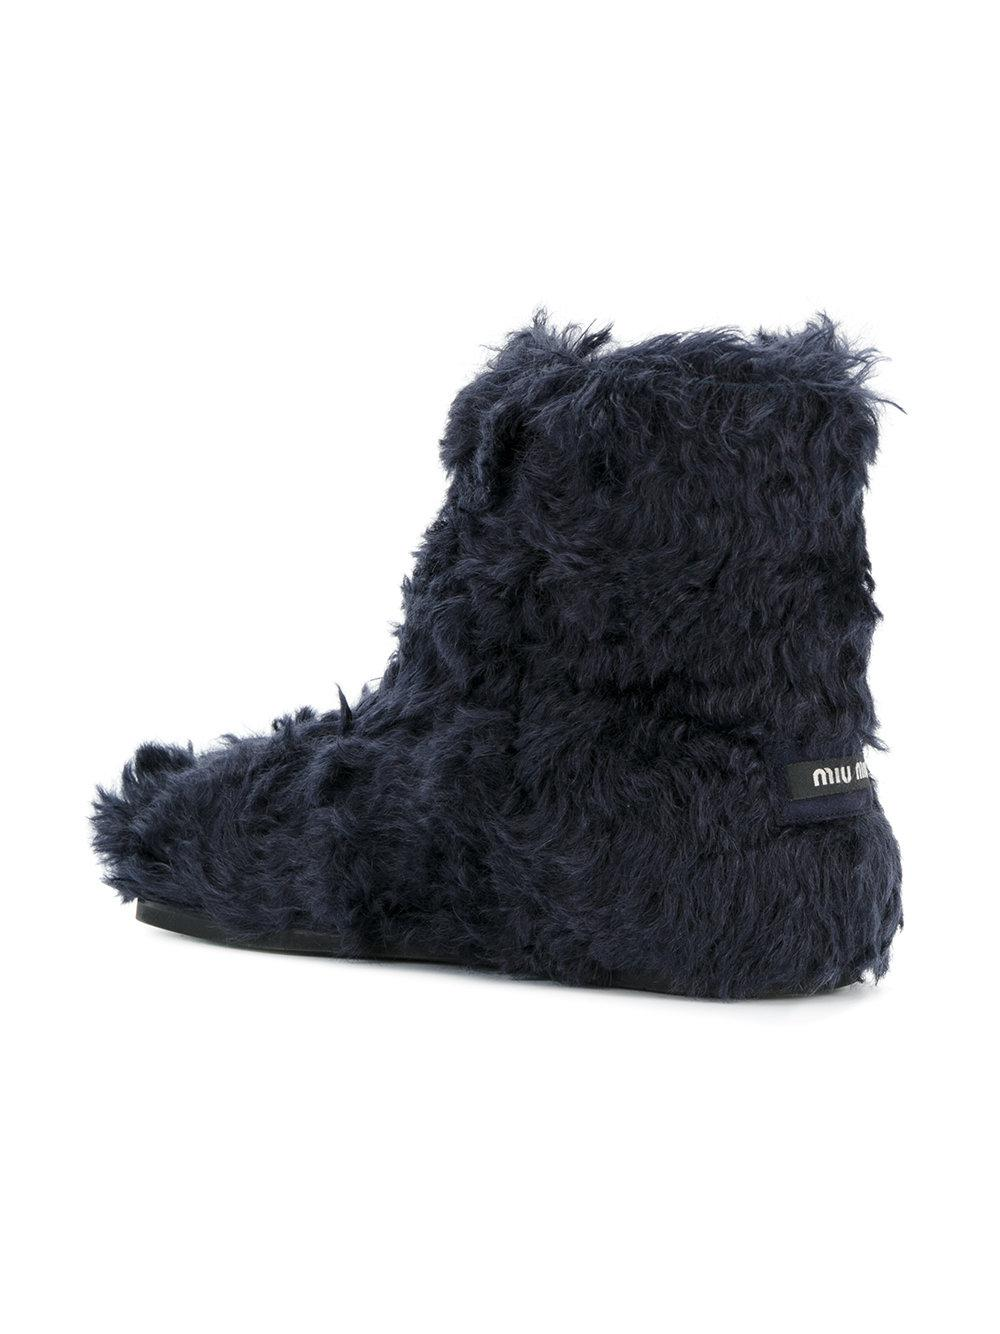 Miu Miu Cotton Eco Shearling Boots in Blue